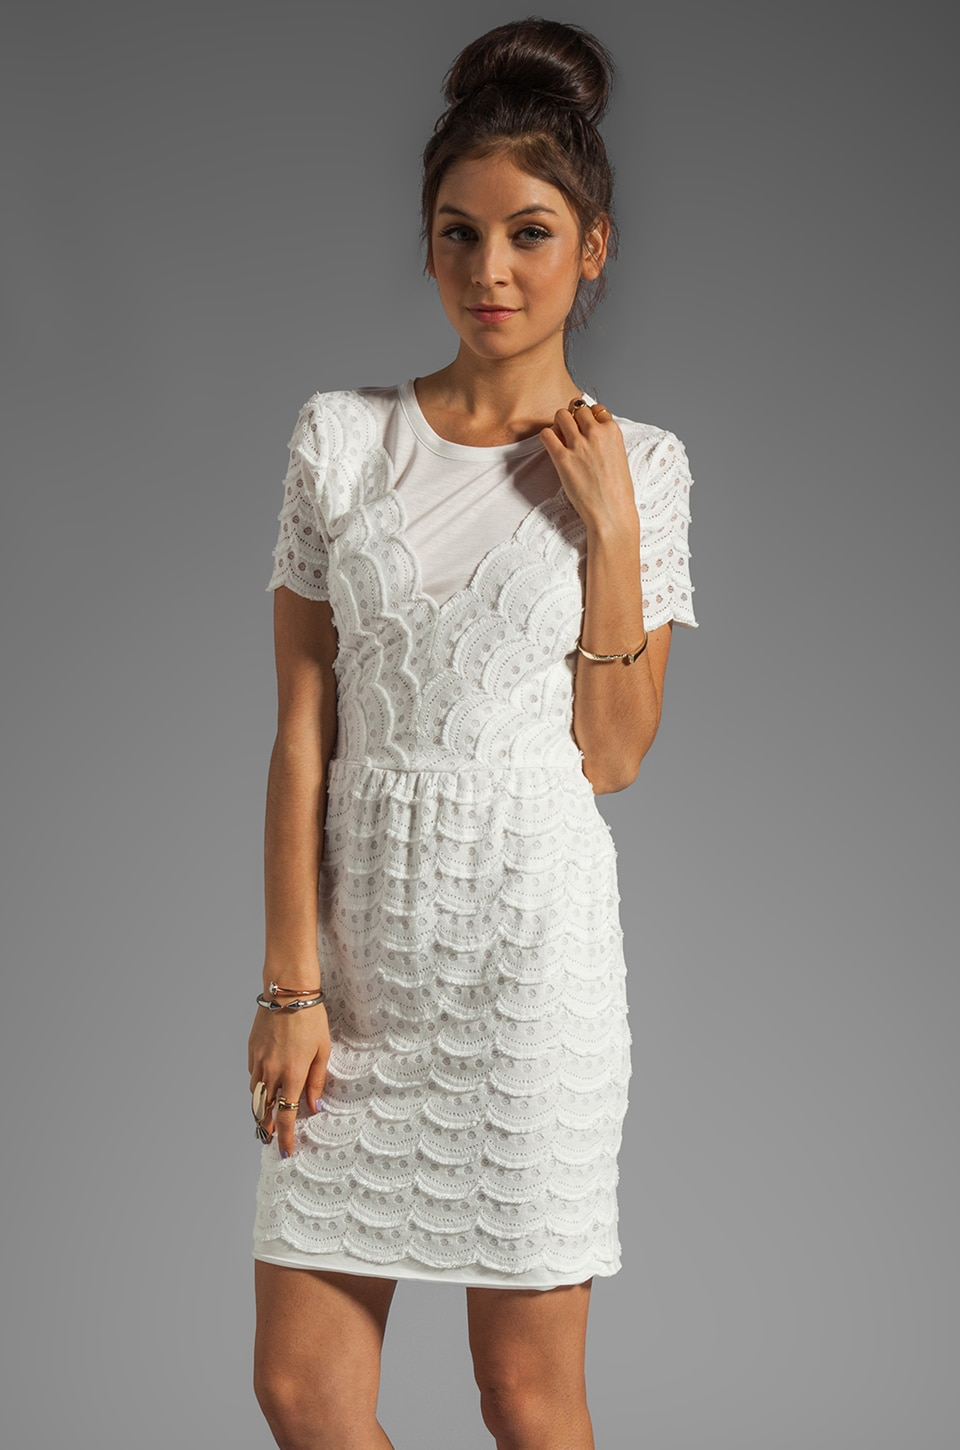 Marc by Marc Jacobs Scallop Tier Lace Dress in Marshmallow